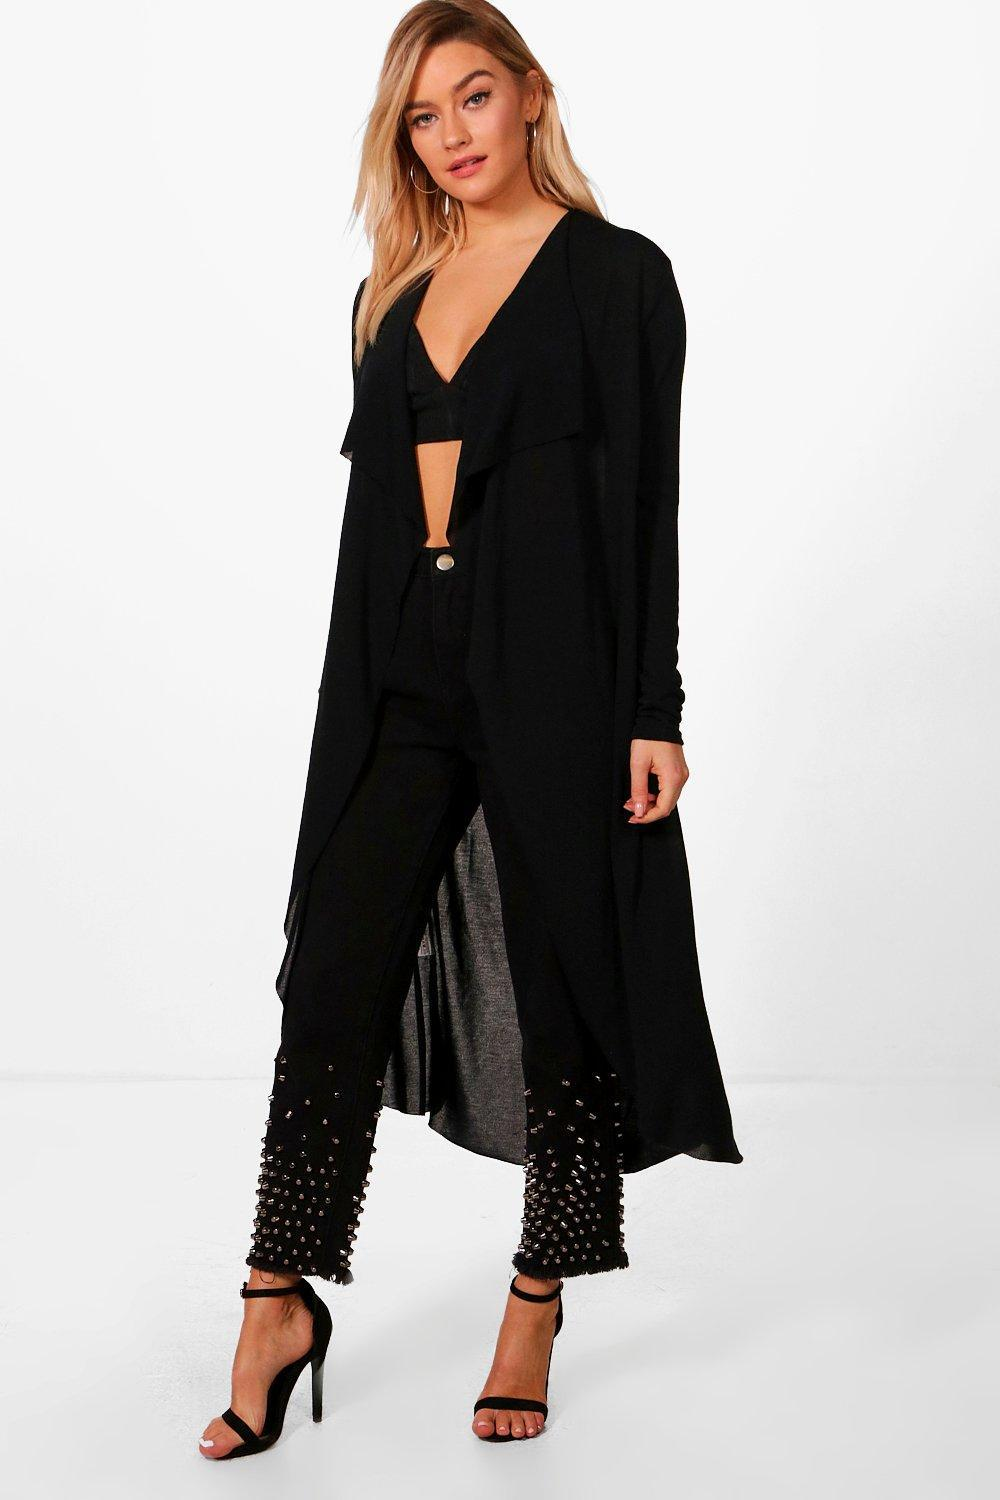 Boohoo Luna Waterfall Belted Midi Cardigan in Black | Lyst